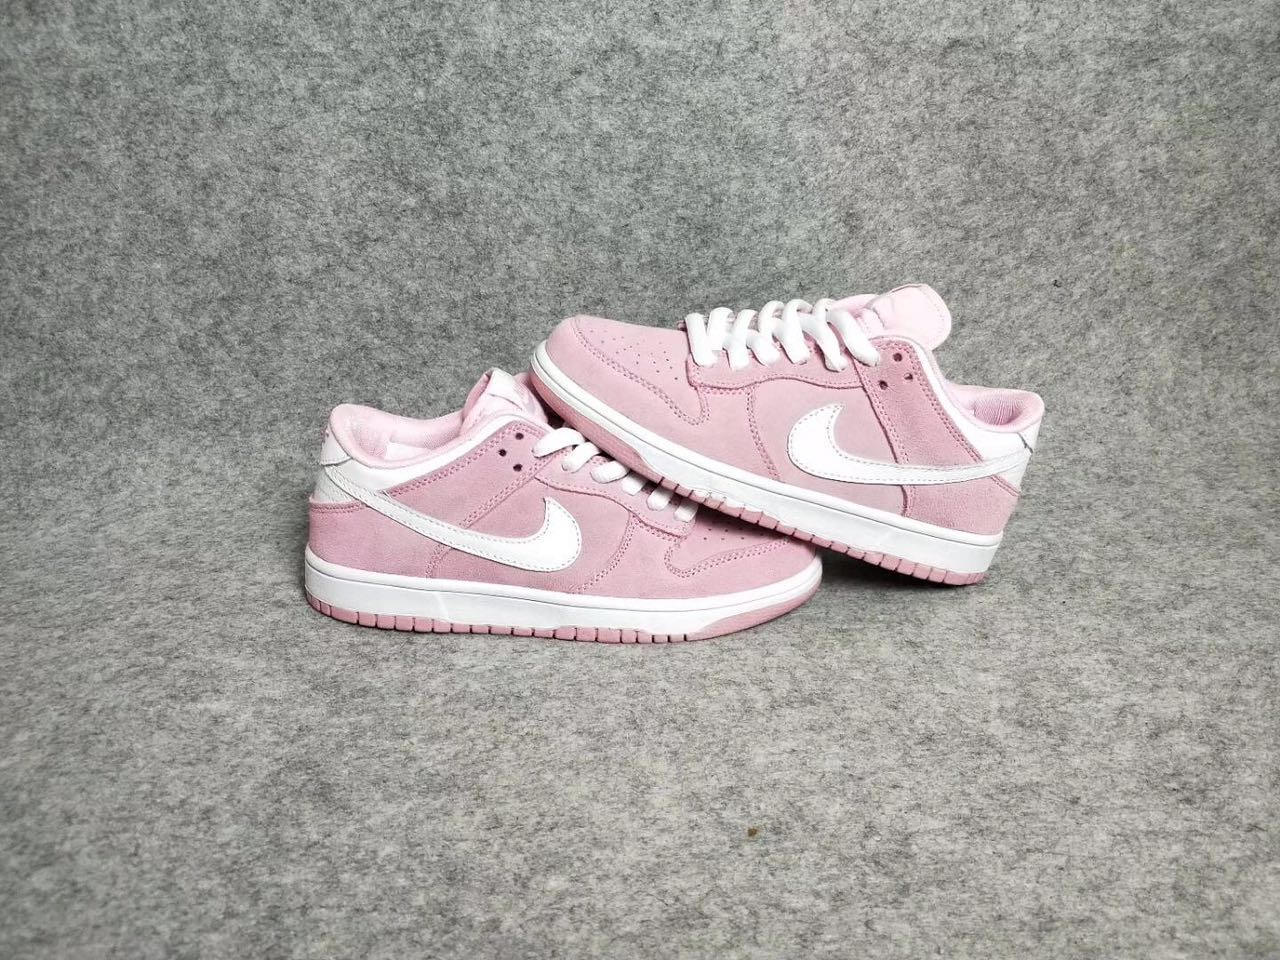 Women Nike Dunk Low GS Pink White Shoes